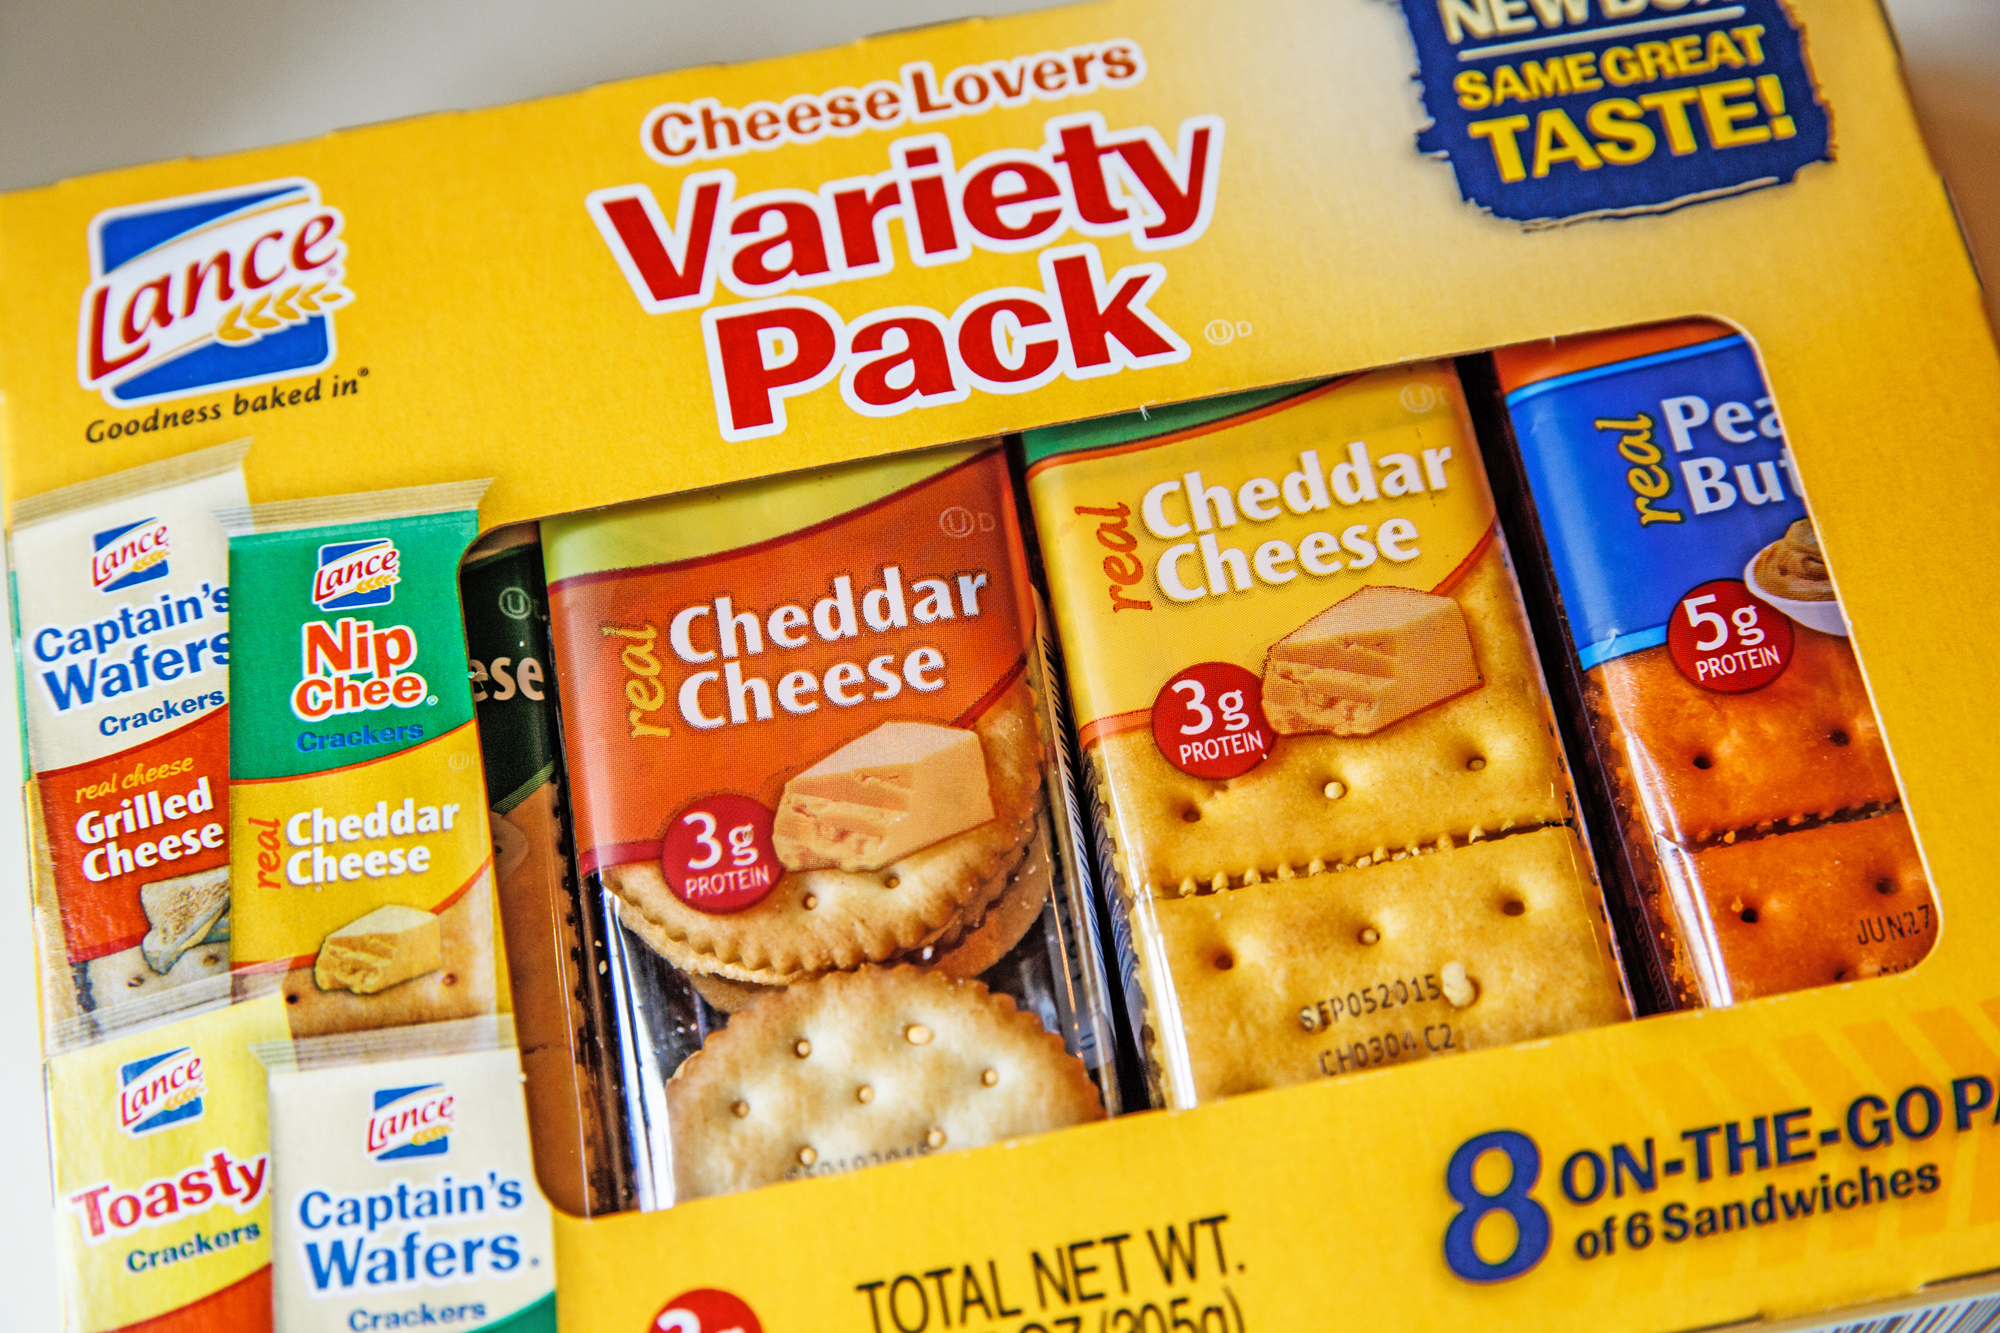 Lance crackers variety pack